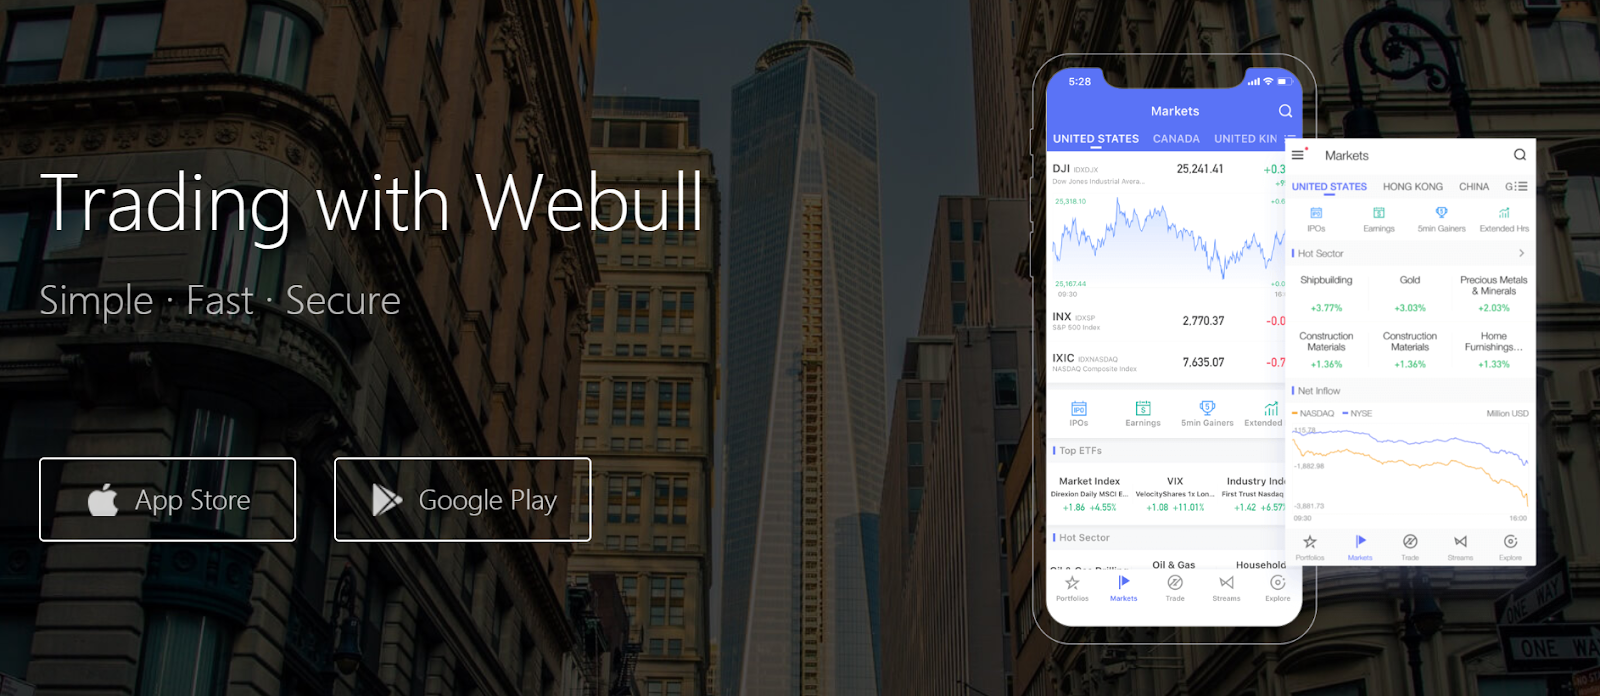 Webull vs ETrade: Which Is The Better Investing Platform